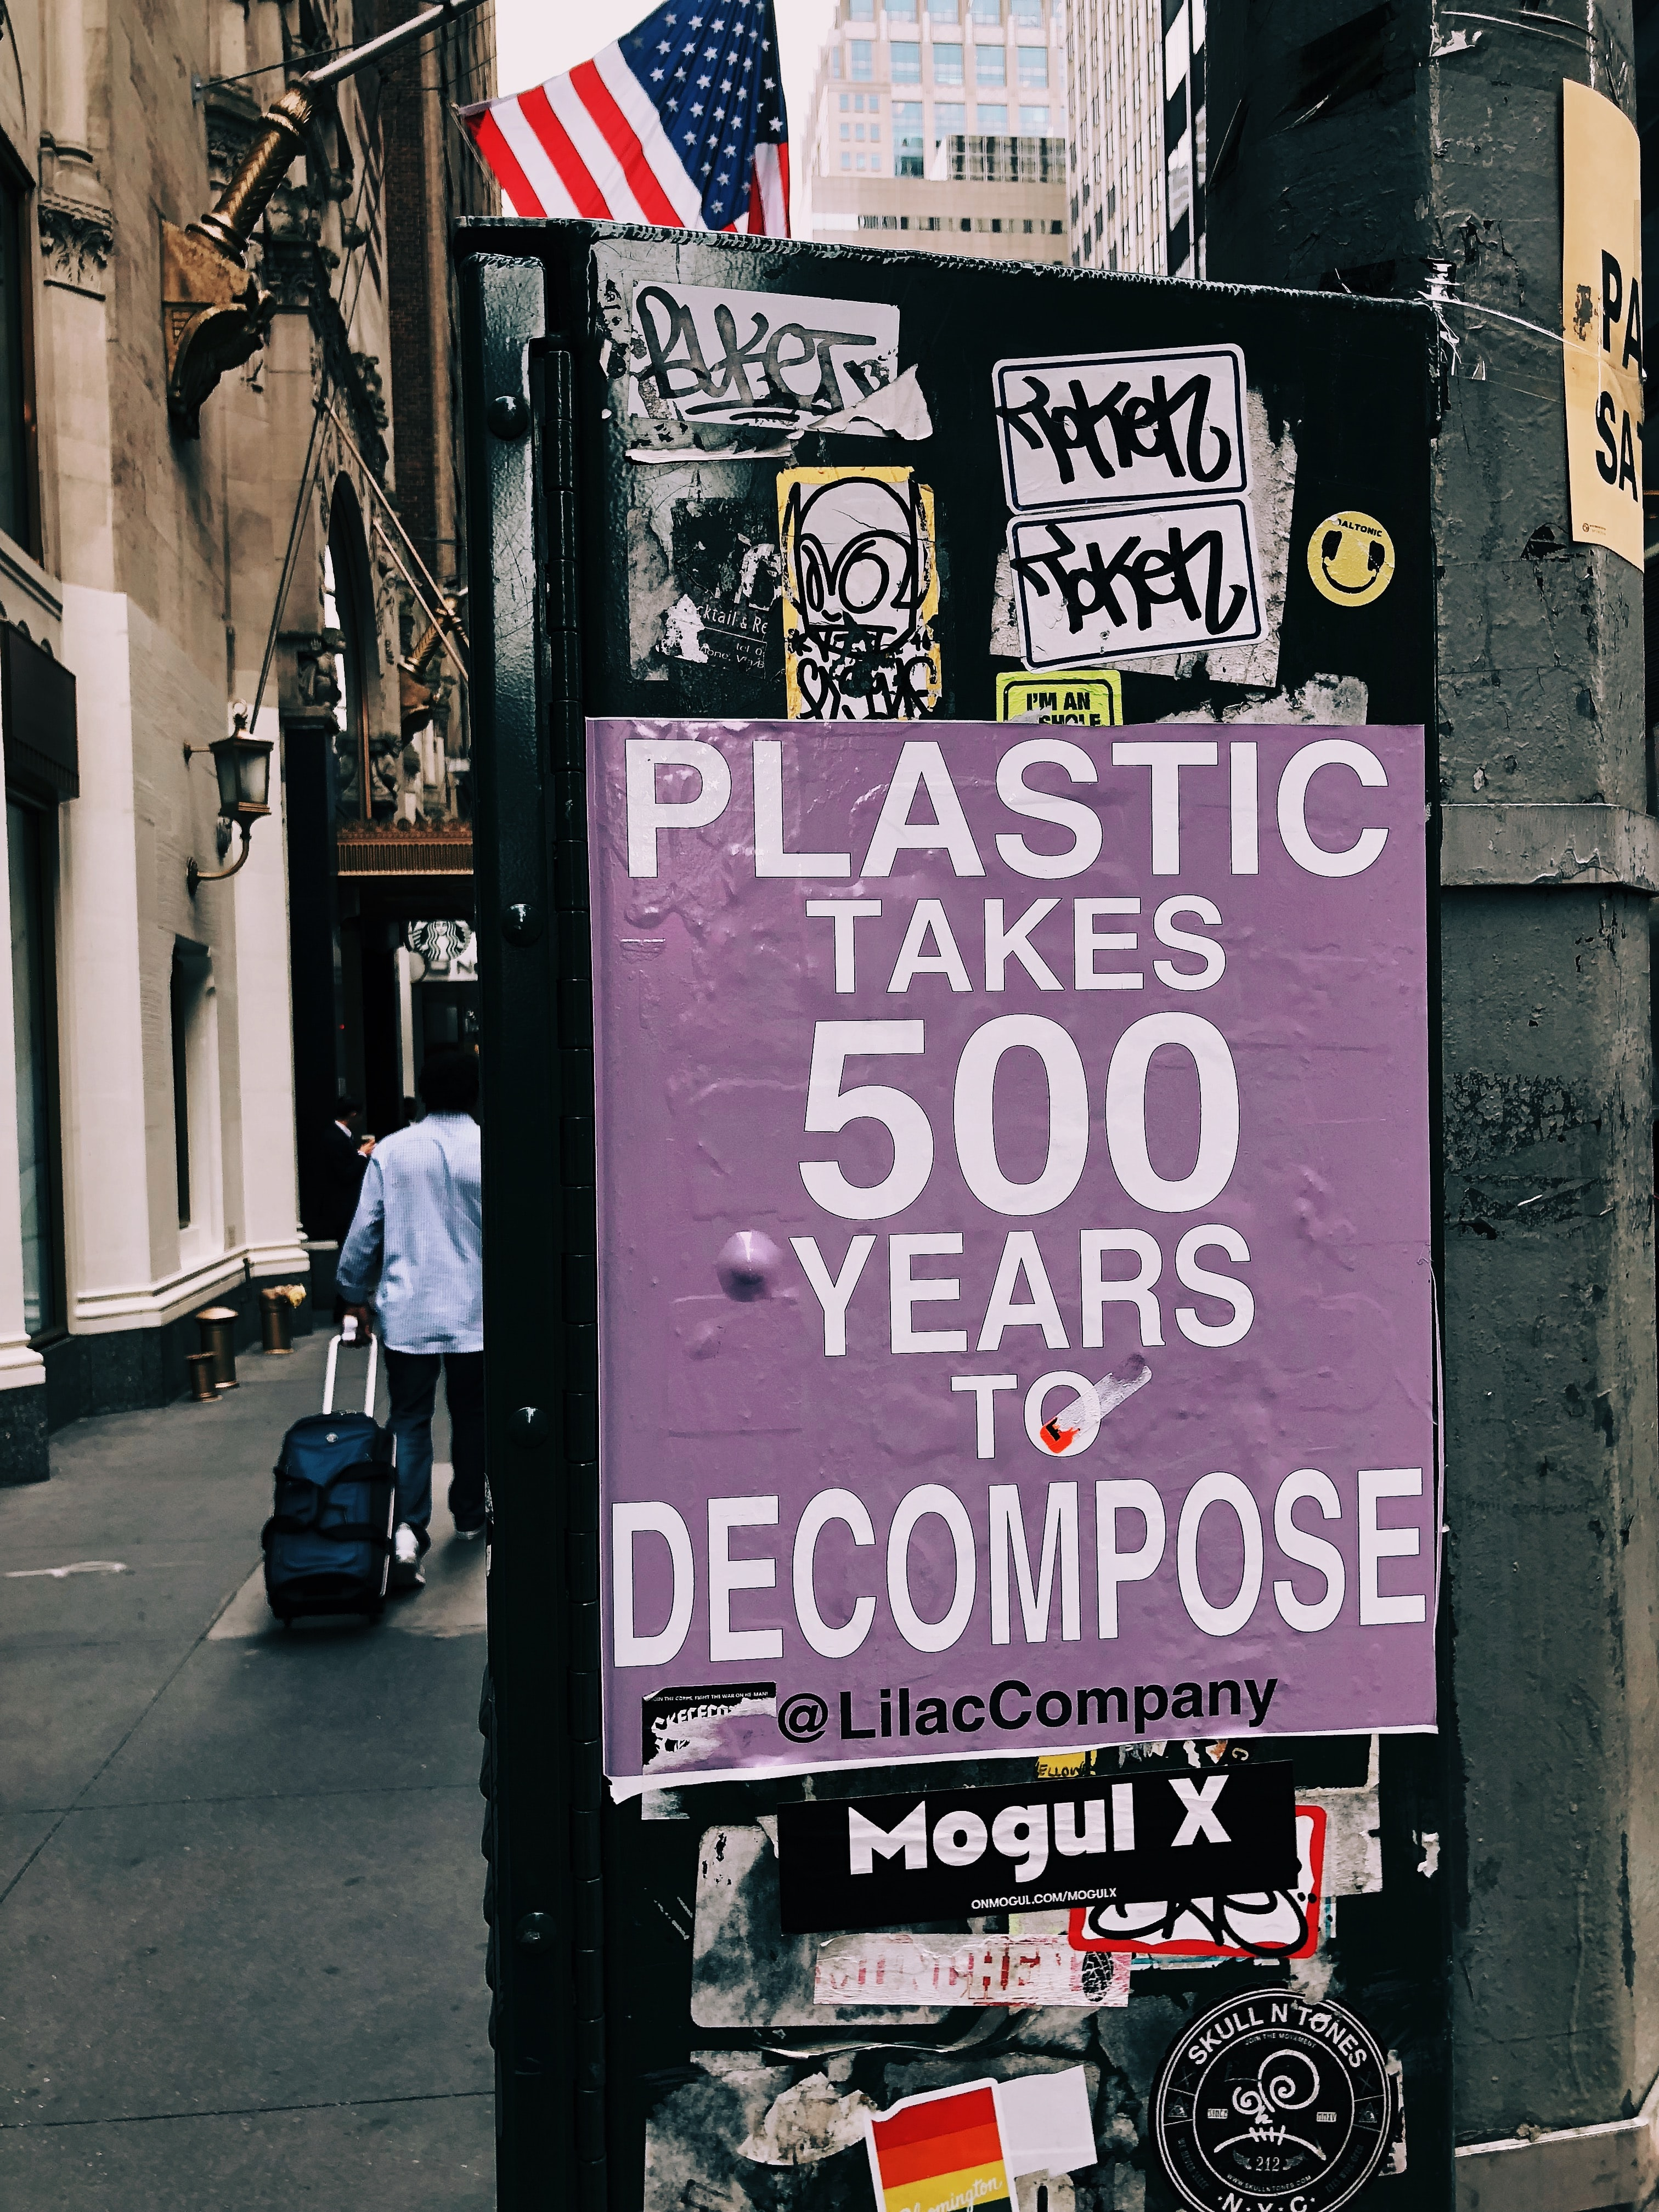 plastic takes 500 years to decompose poster on black surface